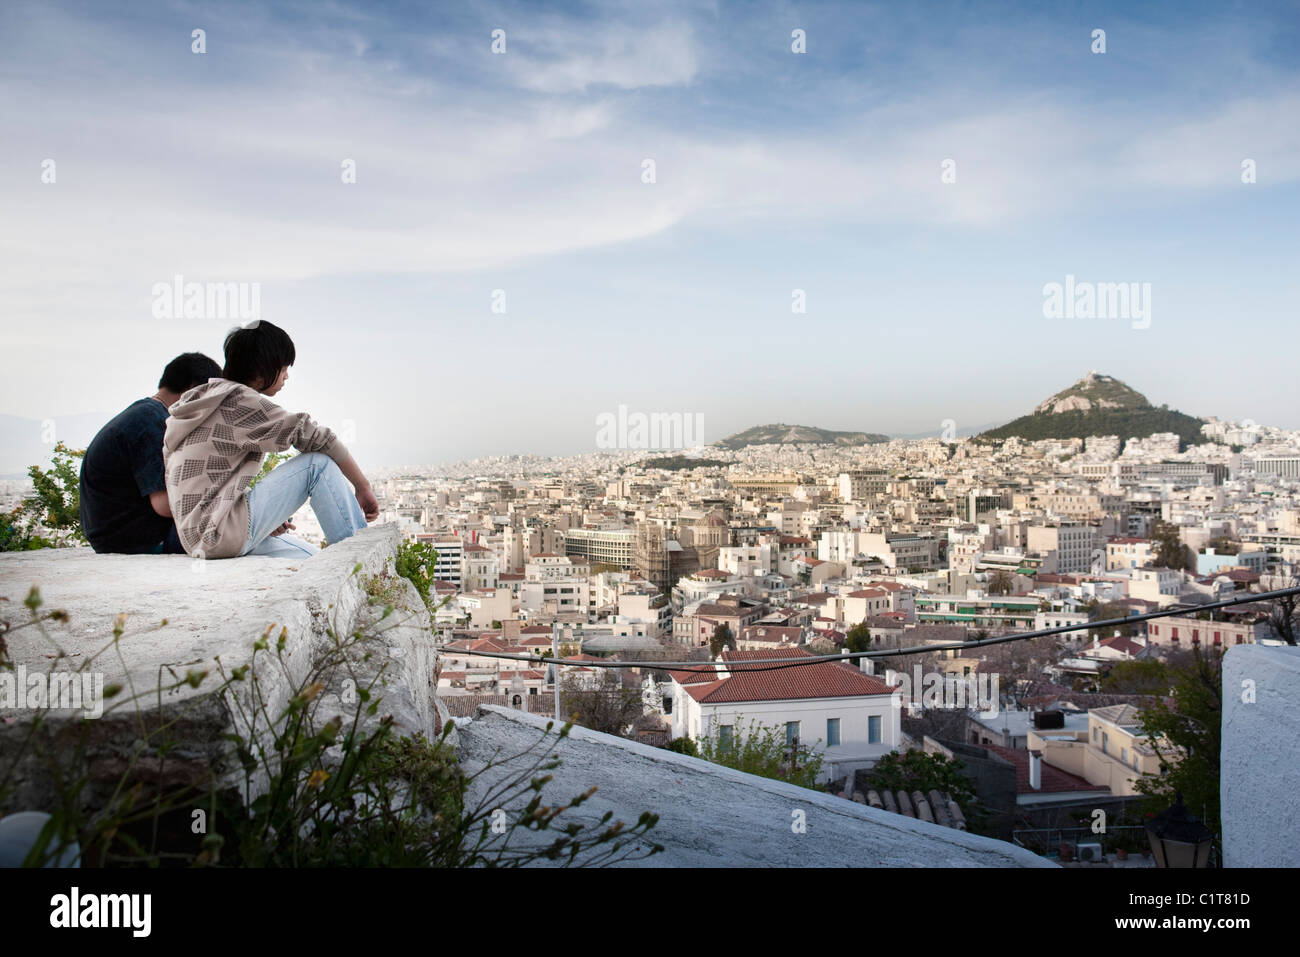 Tourists sitting on rock overlooking Athens, Greece and Mount Lycabettus Stock Photo